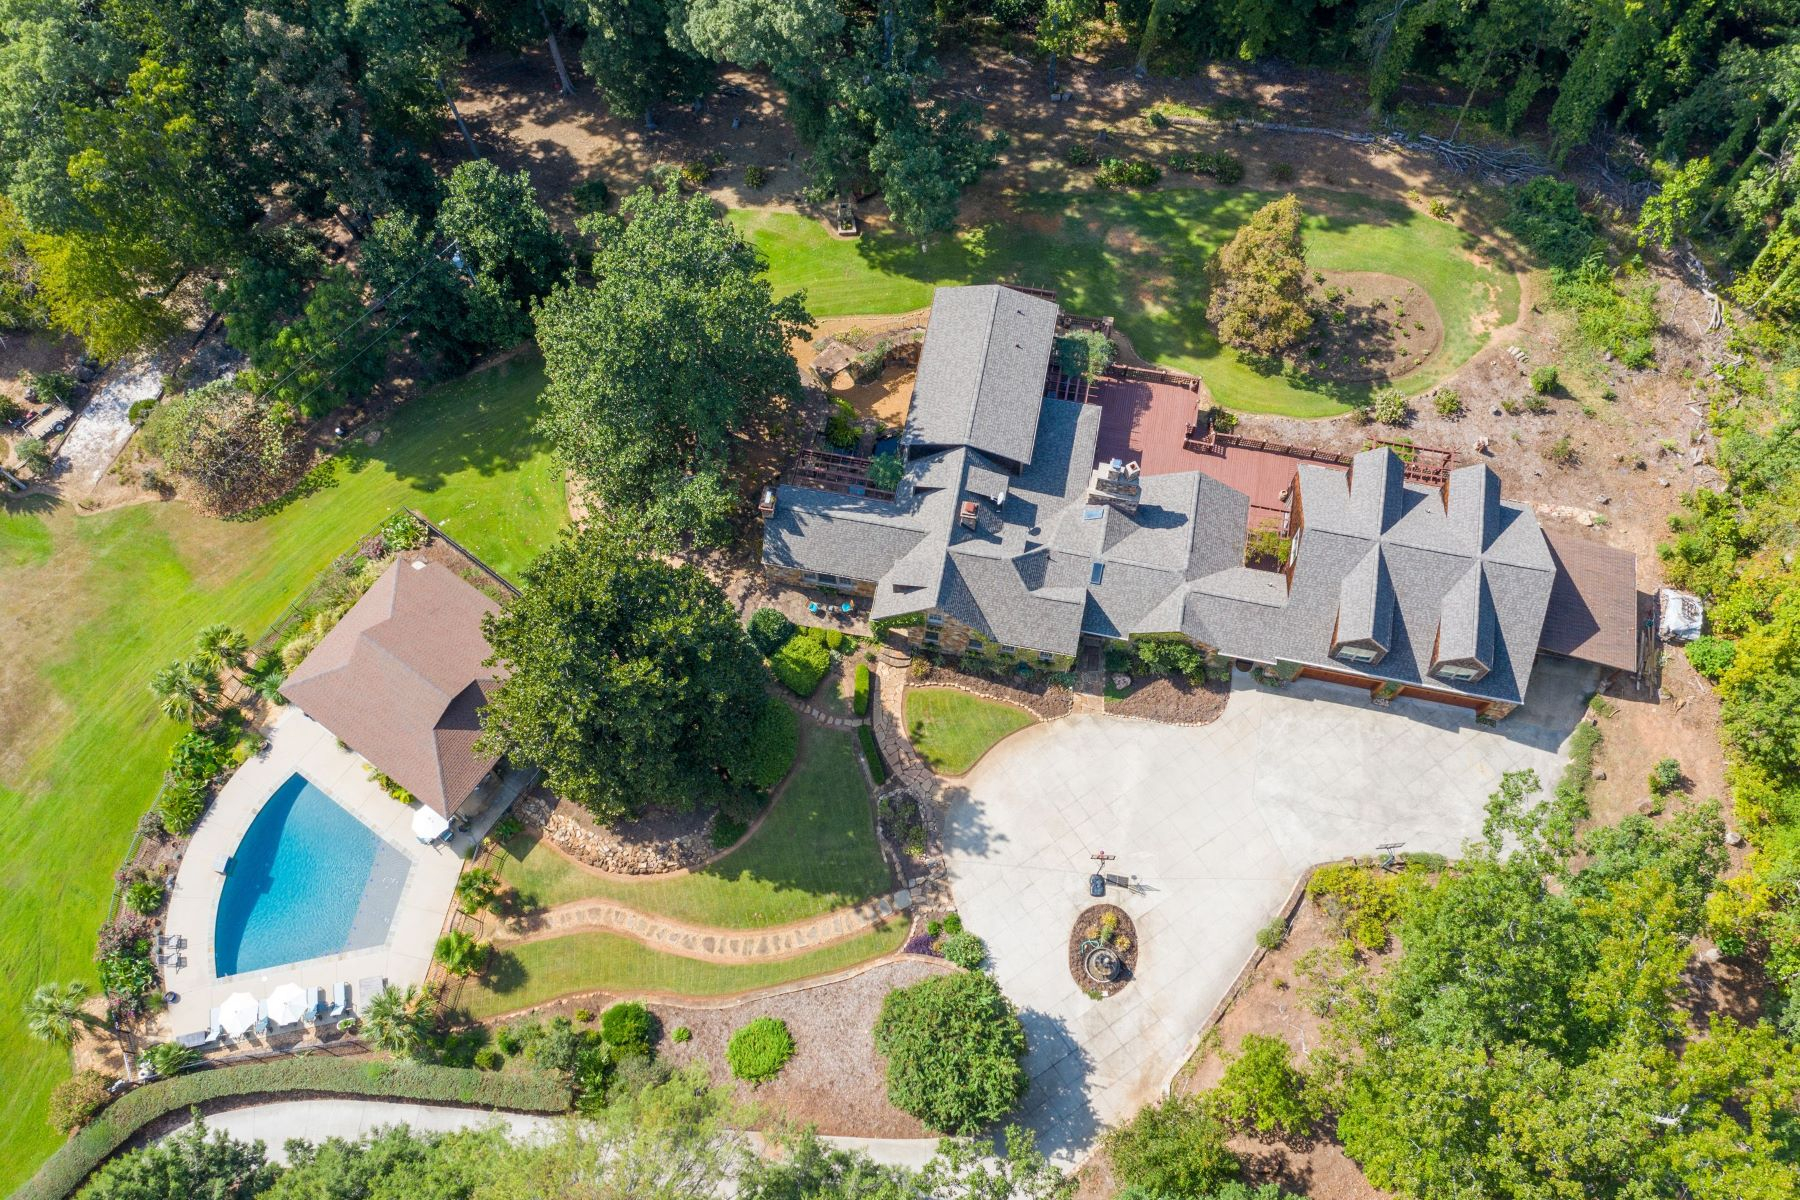 Single Family Homes for Sale at 538 Crestwood Drive, Greenville, SC 29609 538 Crestwood Drive Greenville, South Carolina 29609 United States